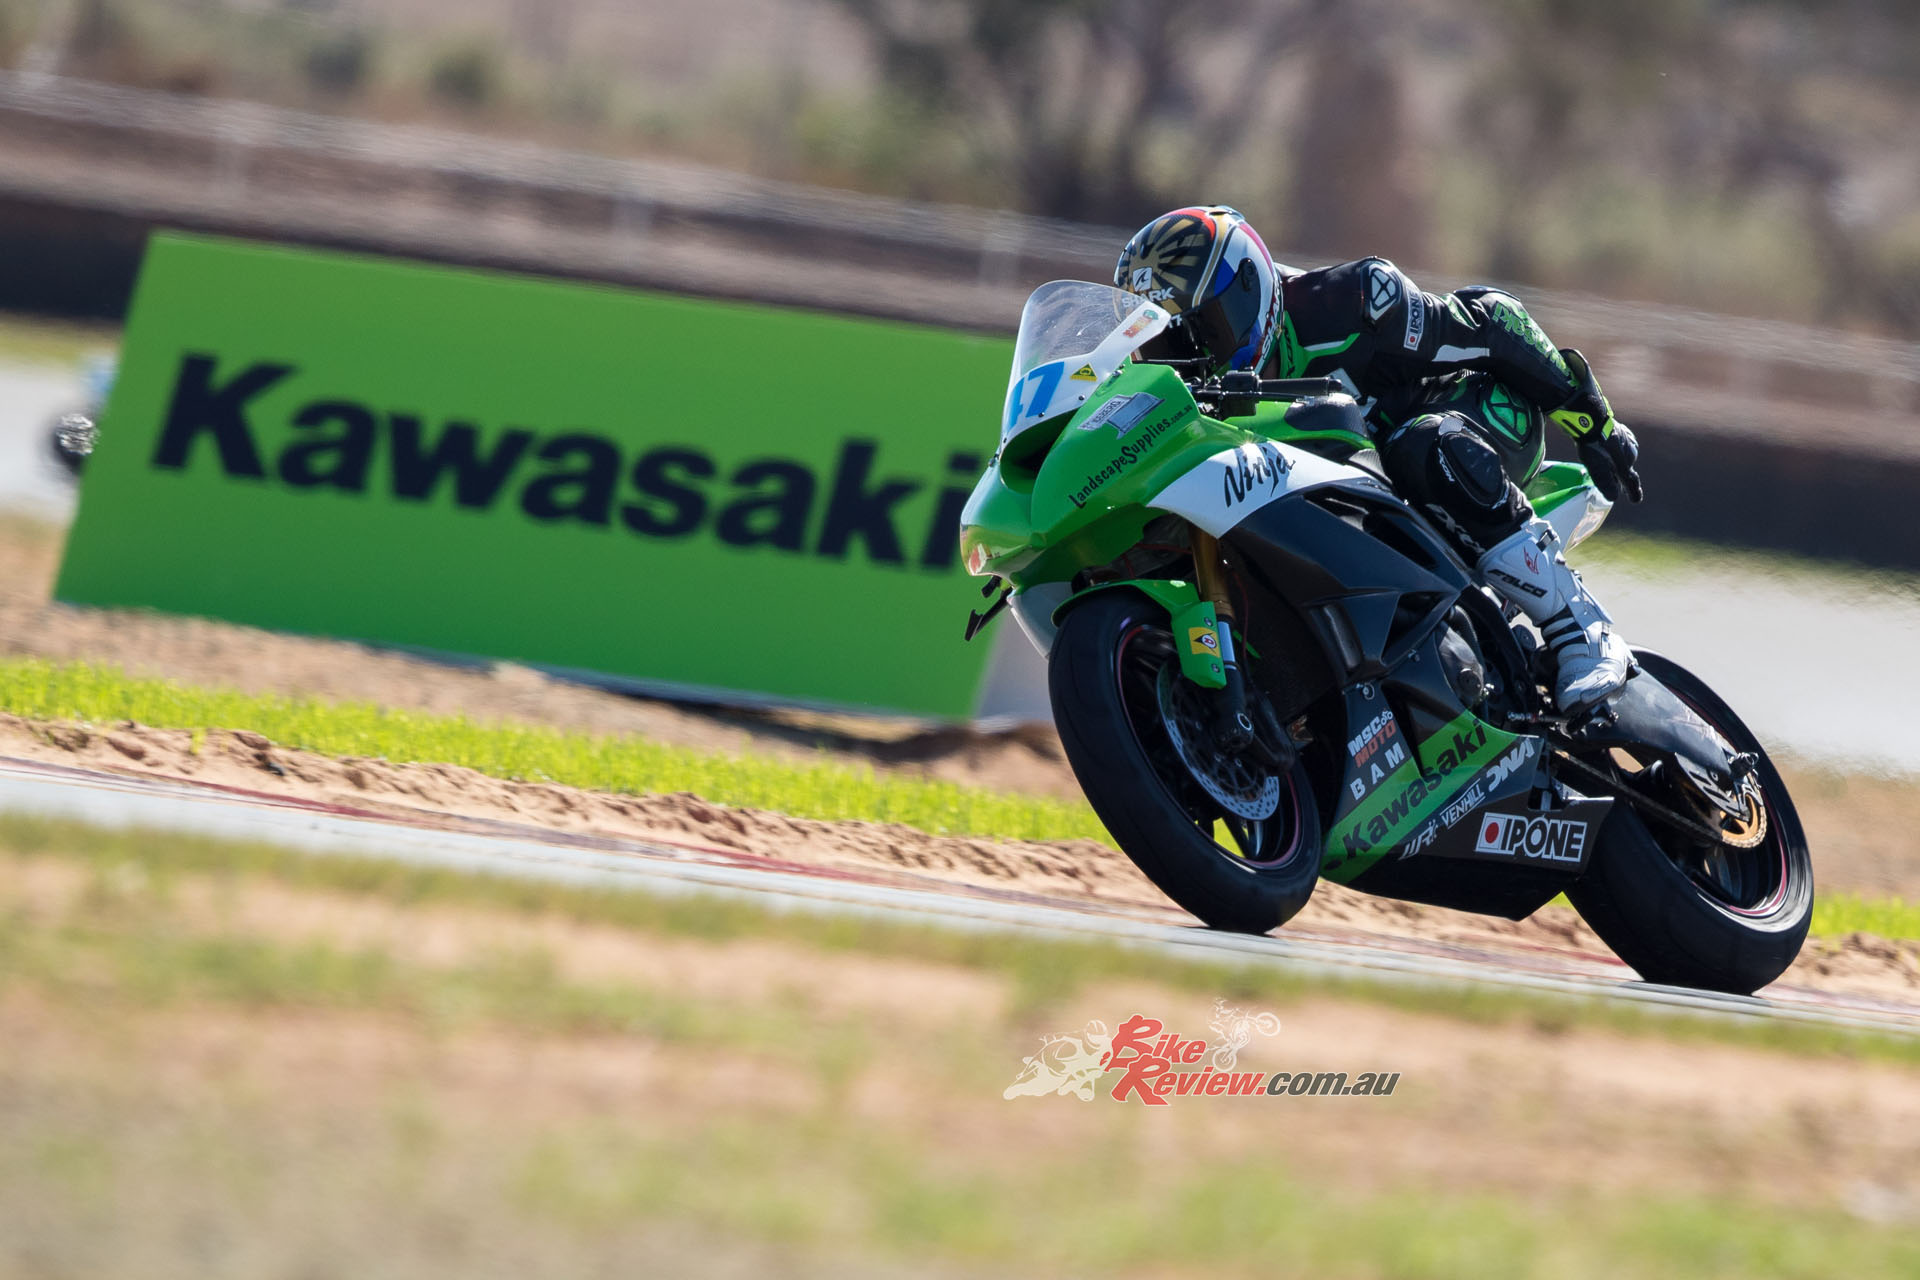 Giuseppe Scarcella on the BC Performance ZX-6R finished fifth overall at The Bend. Pic: Foremost Media